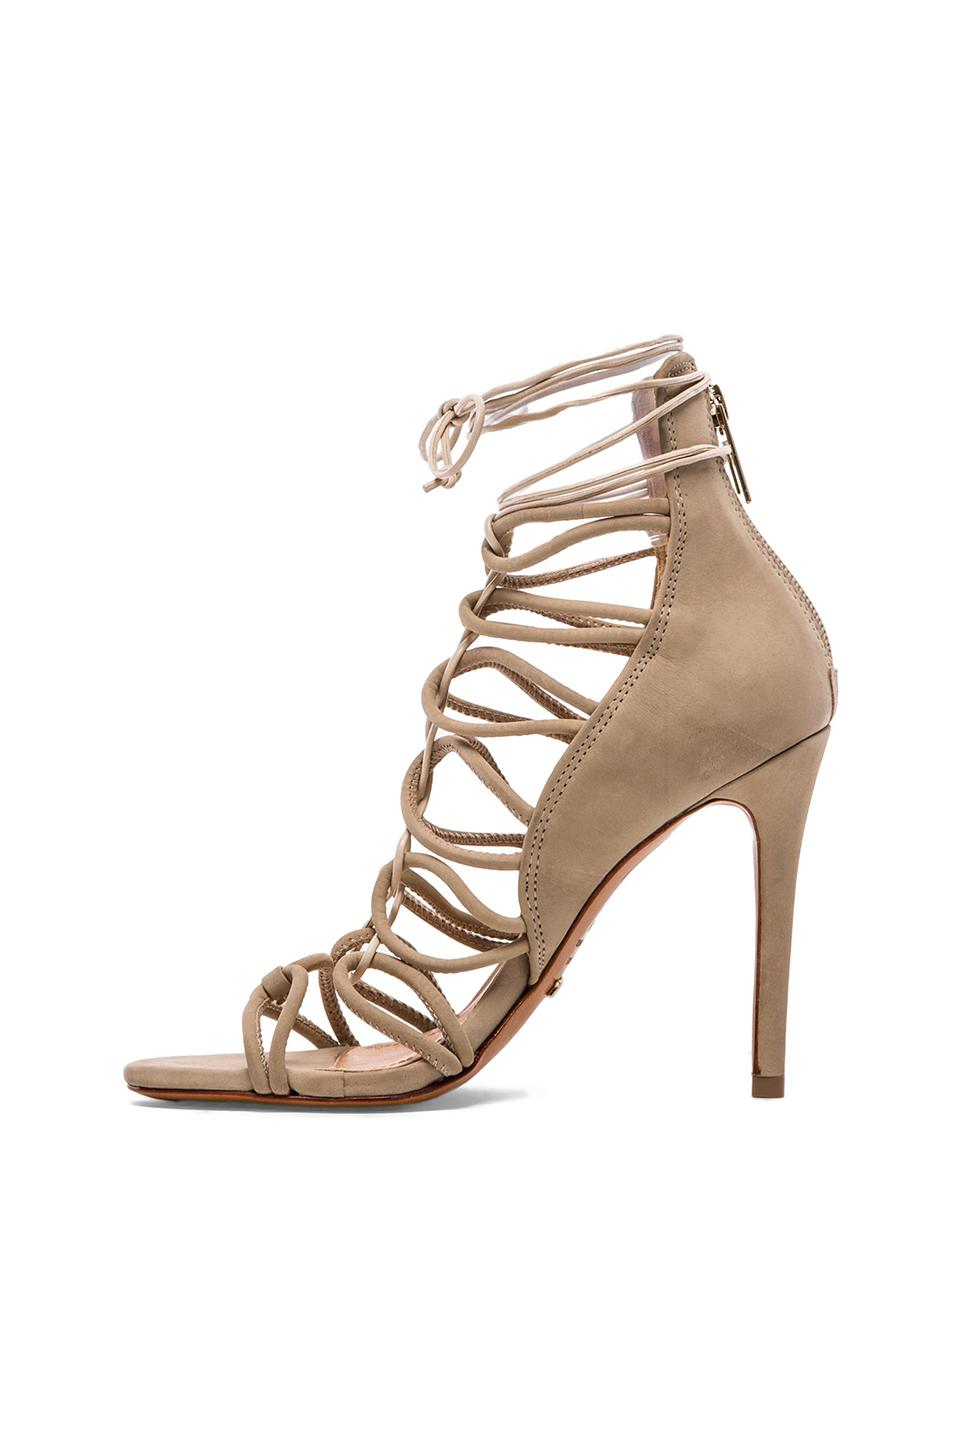 Schutz Fiorenza Heel in Oyster & Sesame from REVOLVEclothing.com